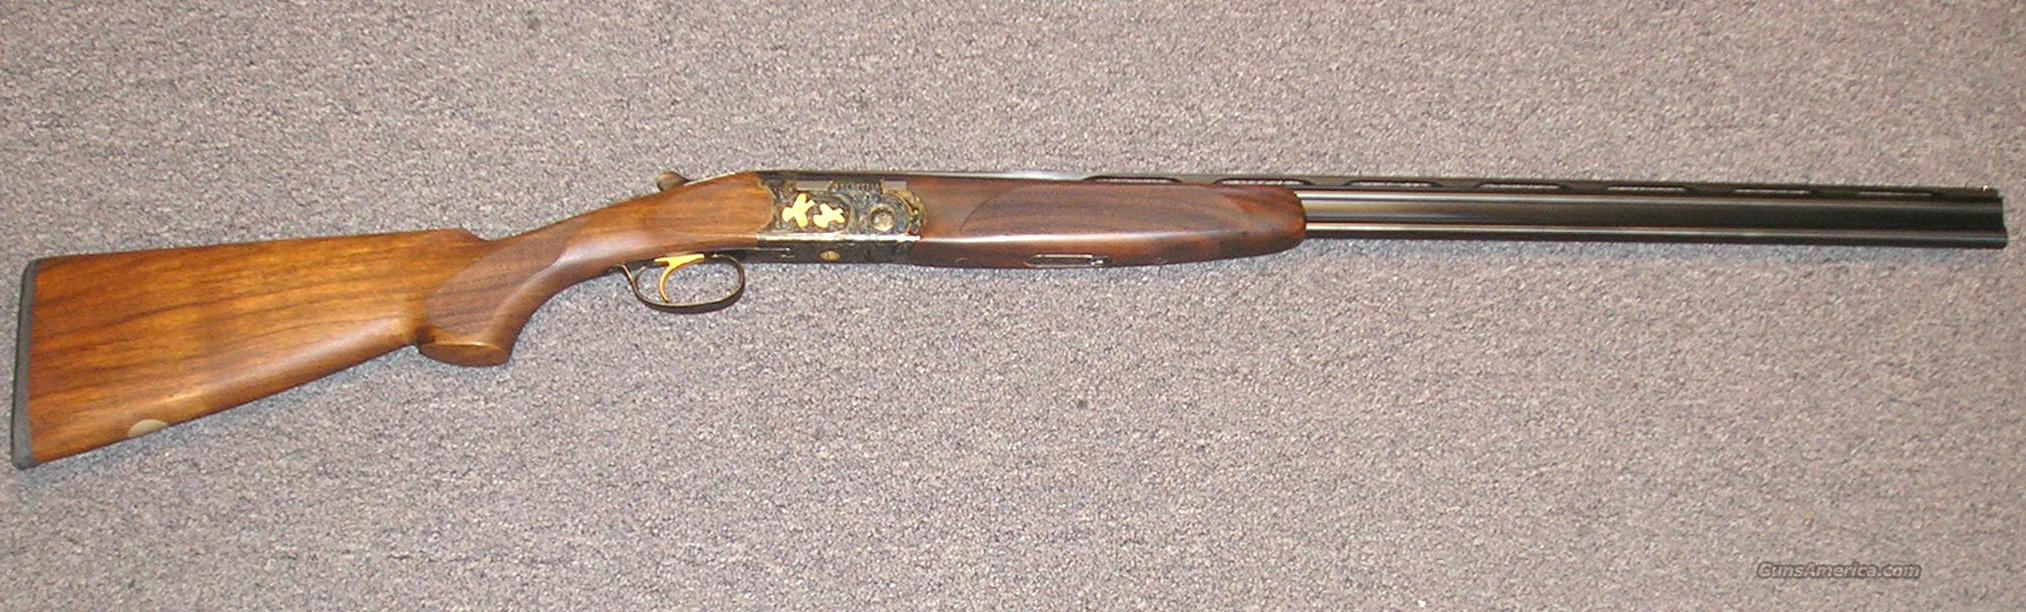 Beretta 687 V * JUST REDUCED*  Guns > Shotguns > Beretta Shotguns > O/U > Hunting